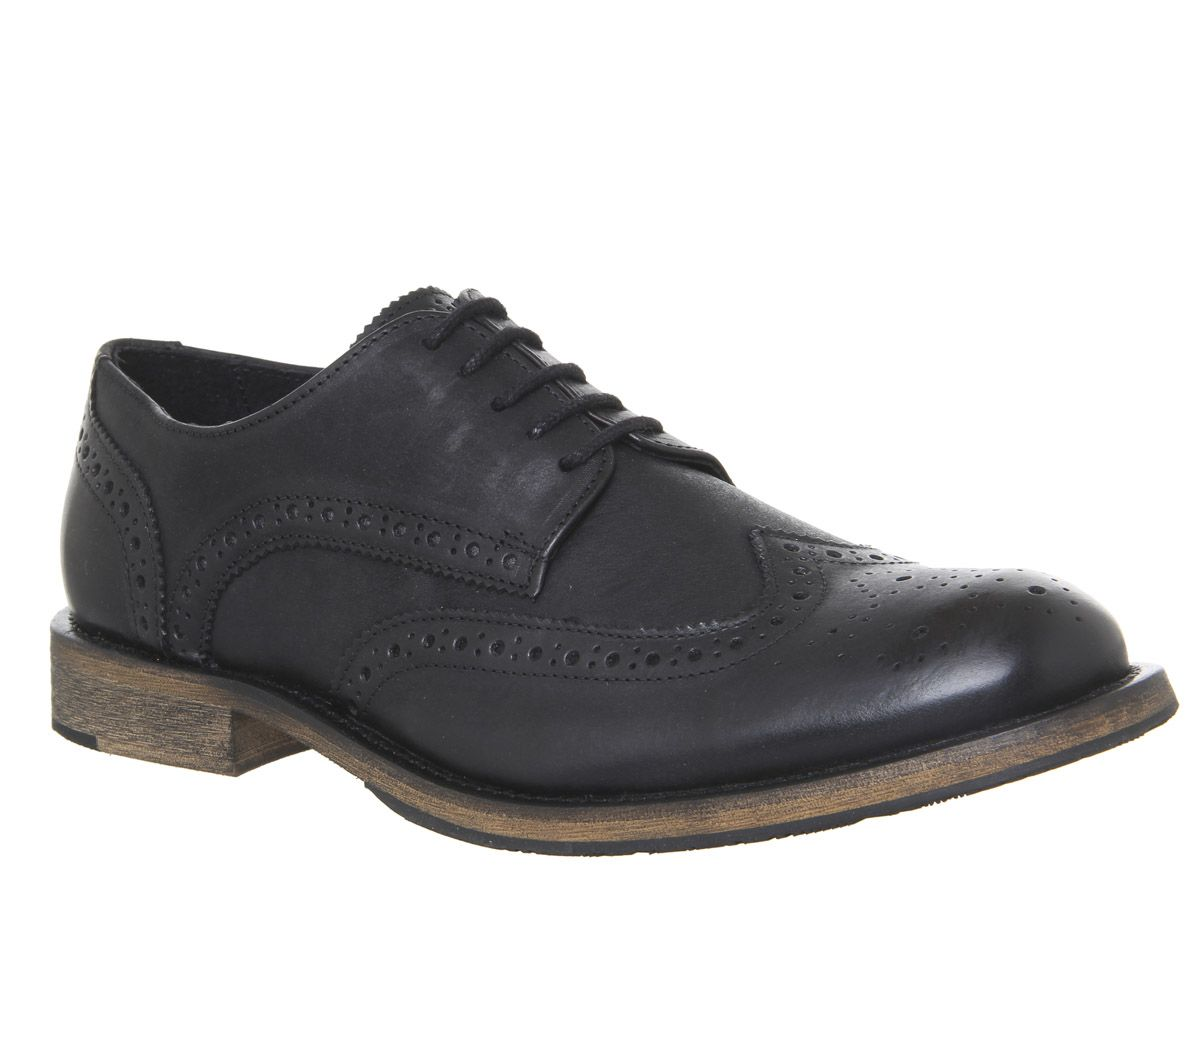 sale retailer 276e6 a64f7 Ask the Missus Impulse Brogues Black Washed Leather - Casual